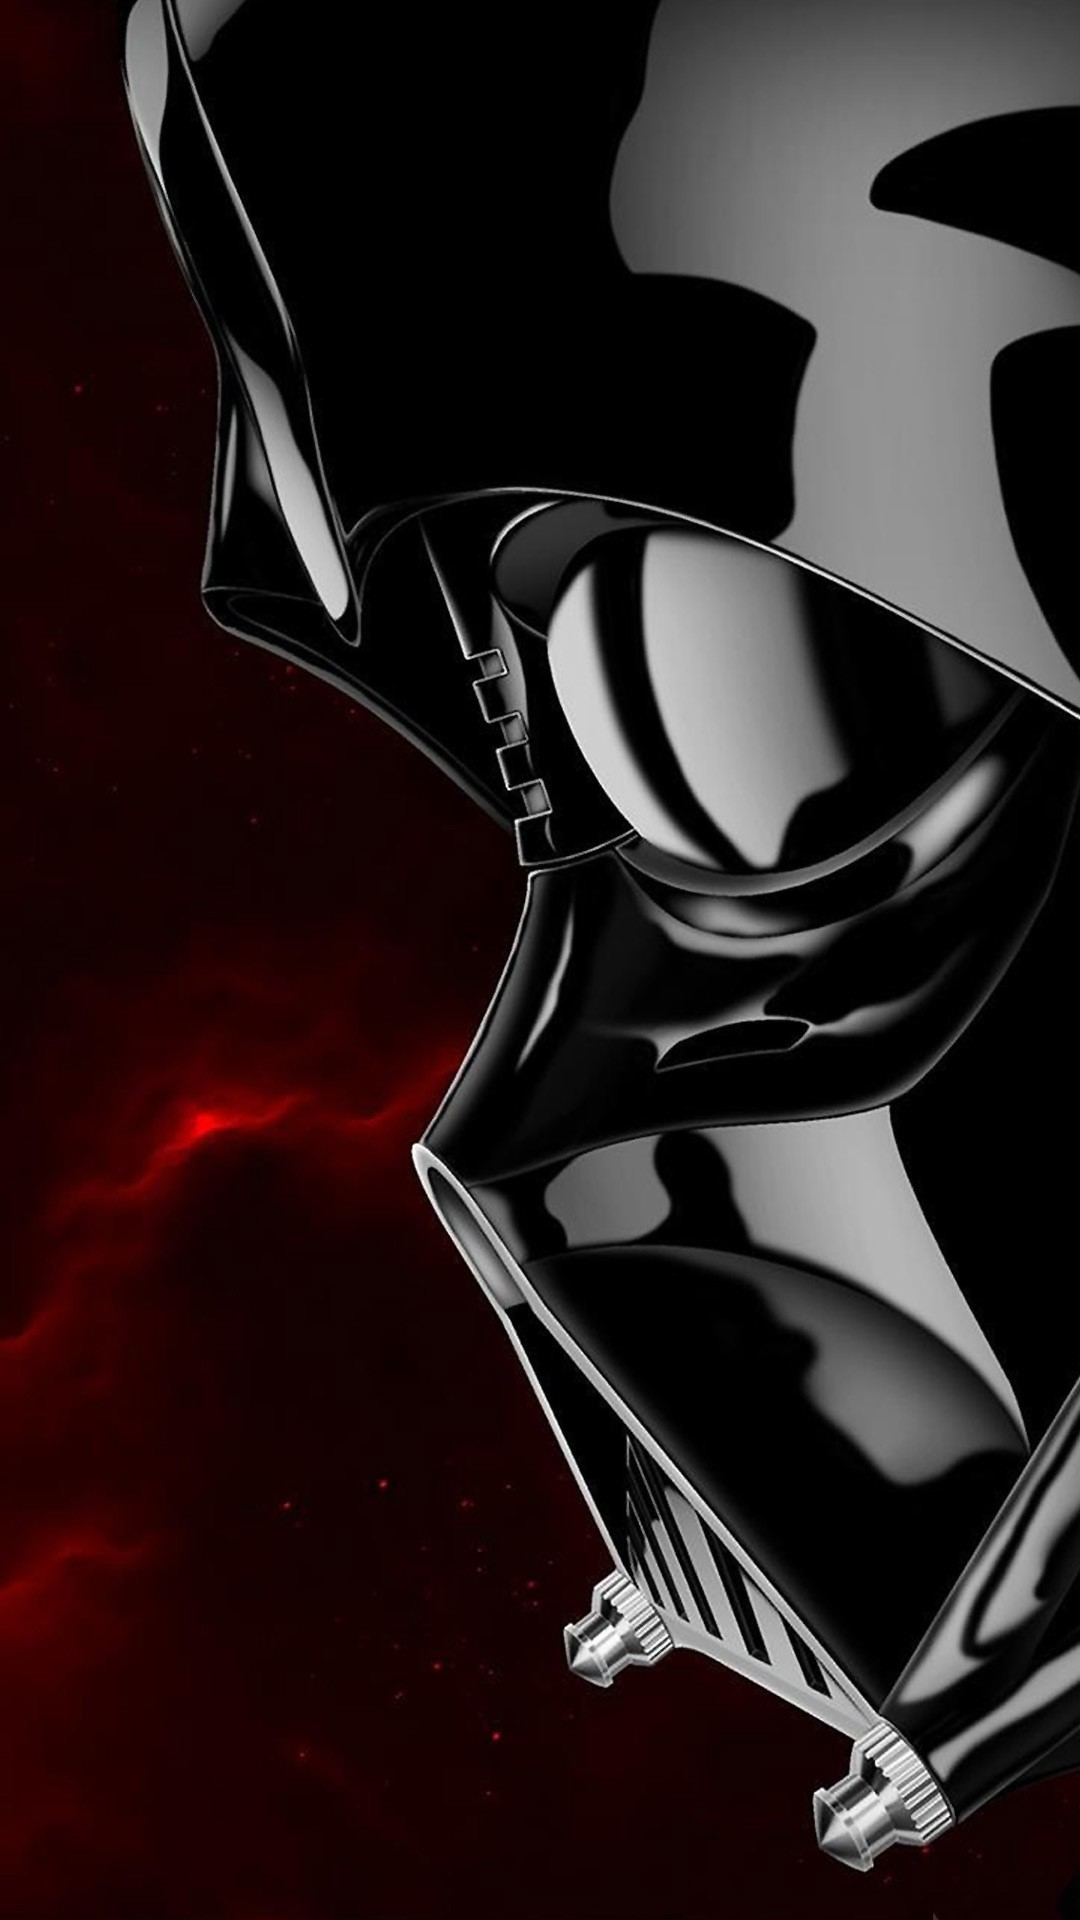 Star Wars HD Wallpaper Phone (63+ images)